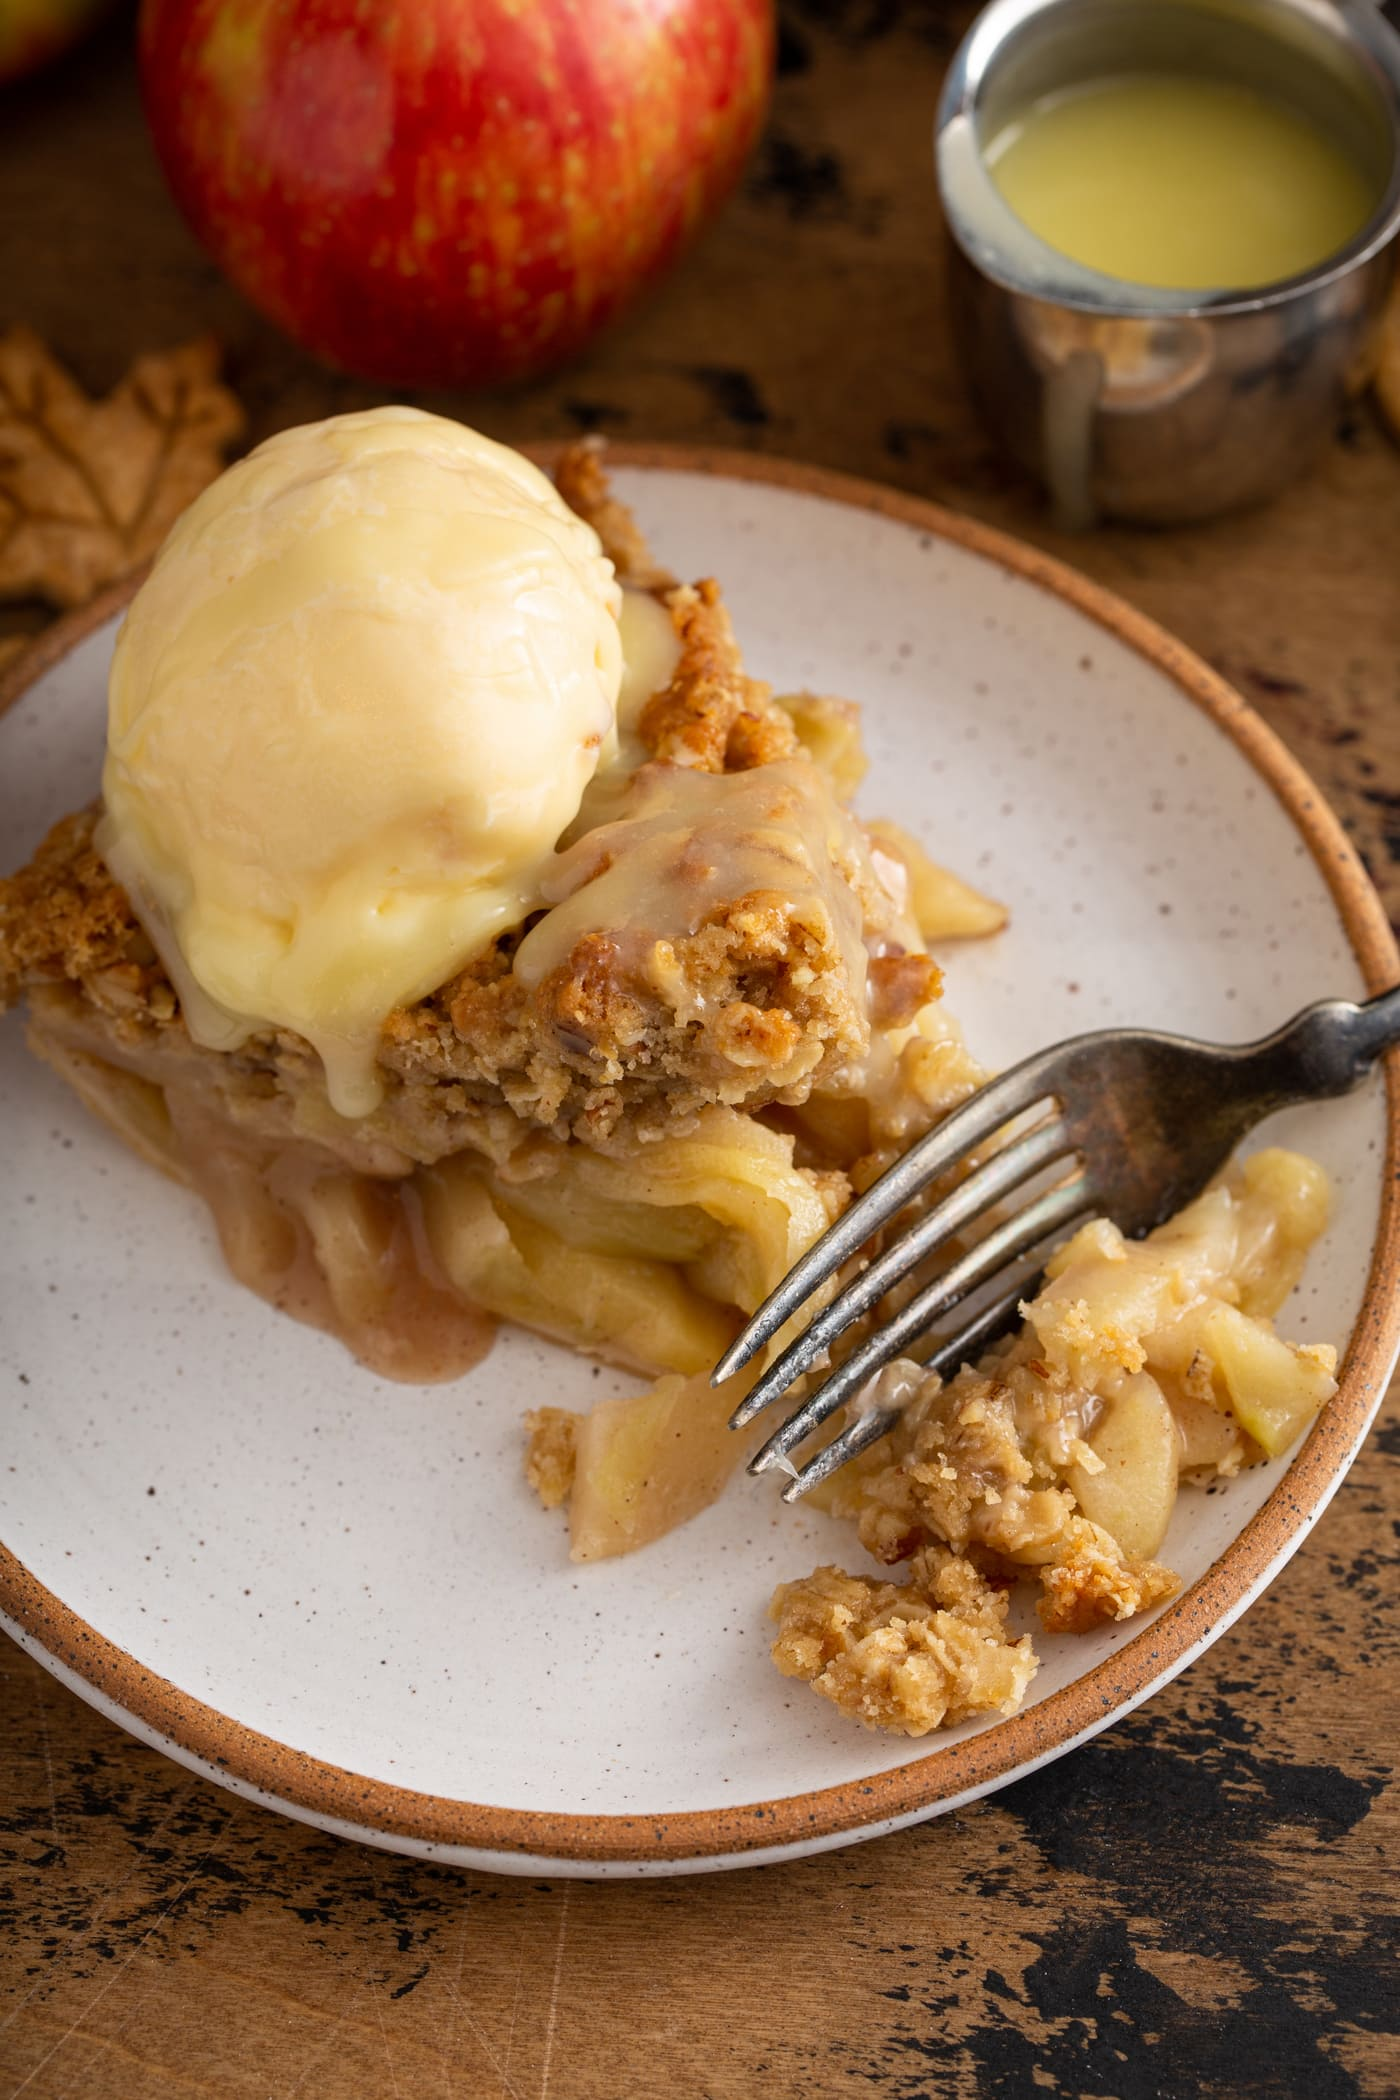 A slice of Dutch apple pie on a white dessert plate. The pie has a scoop of ice cream on top and white chocolate butter sauce is poured over all. A fork is on the plate.